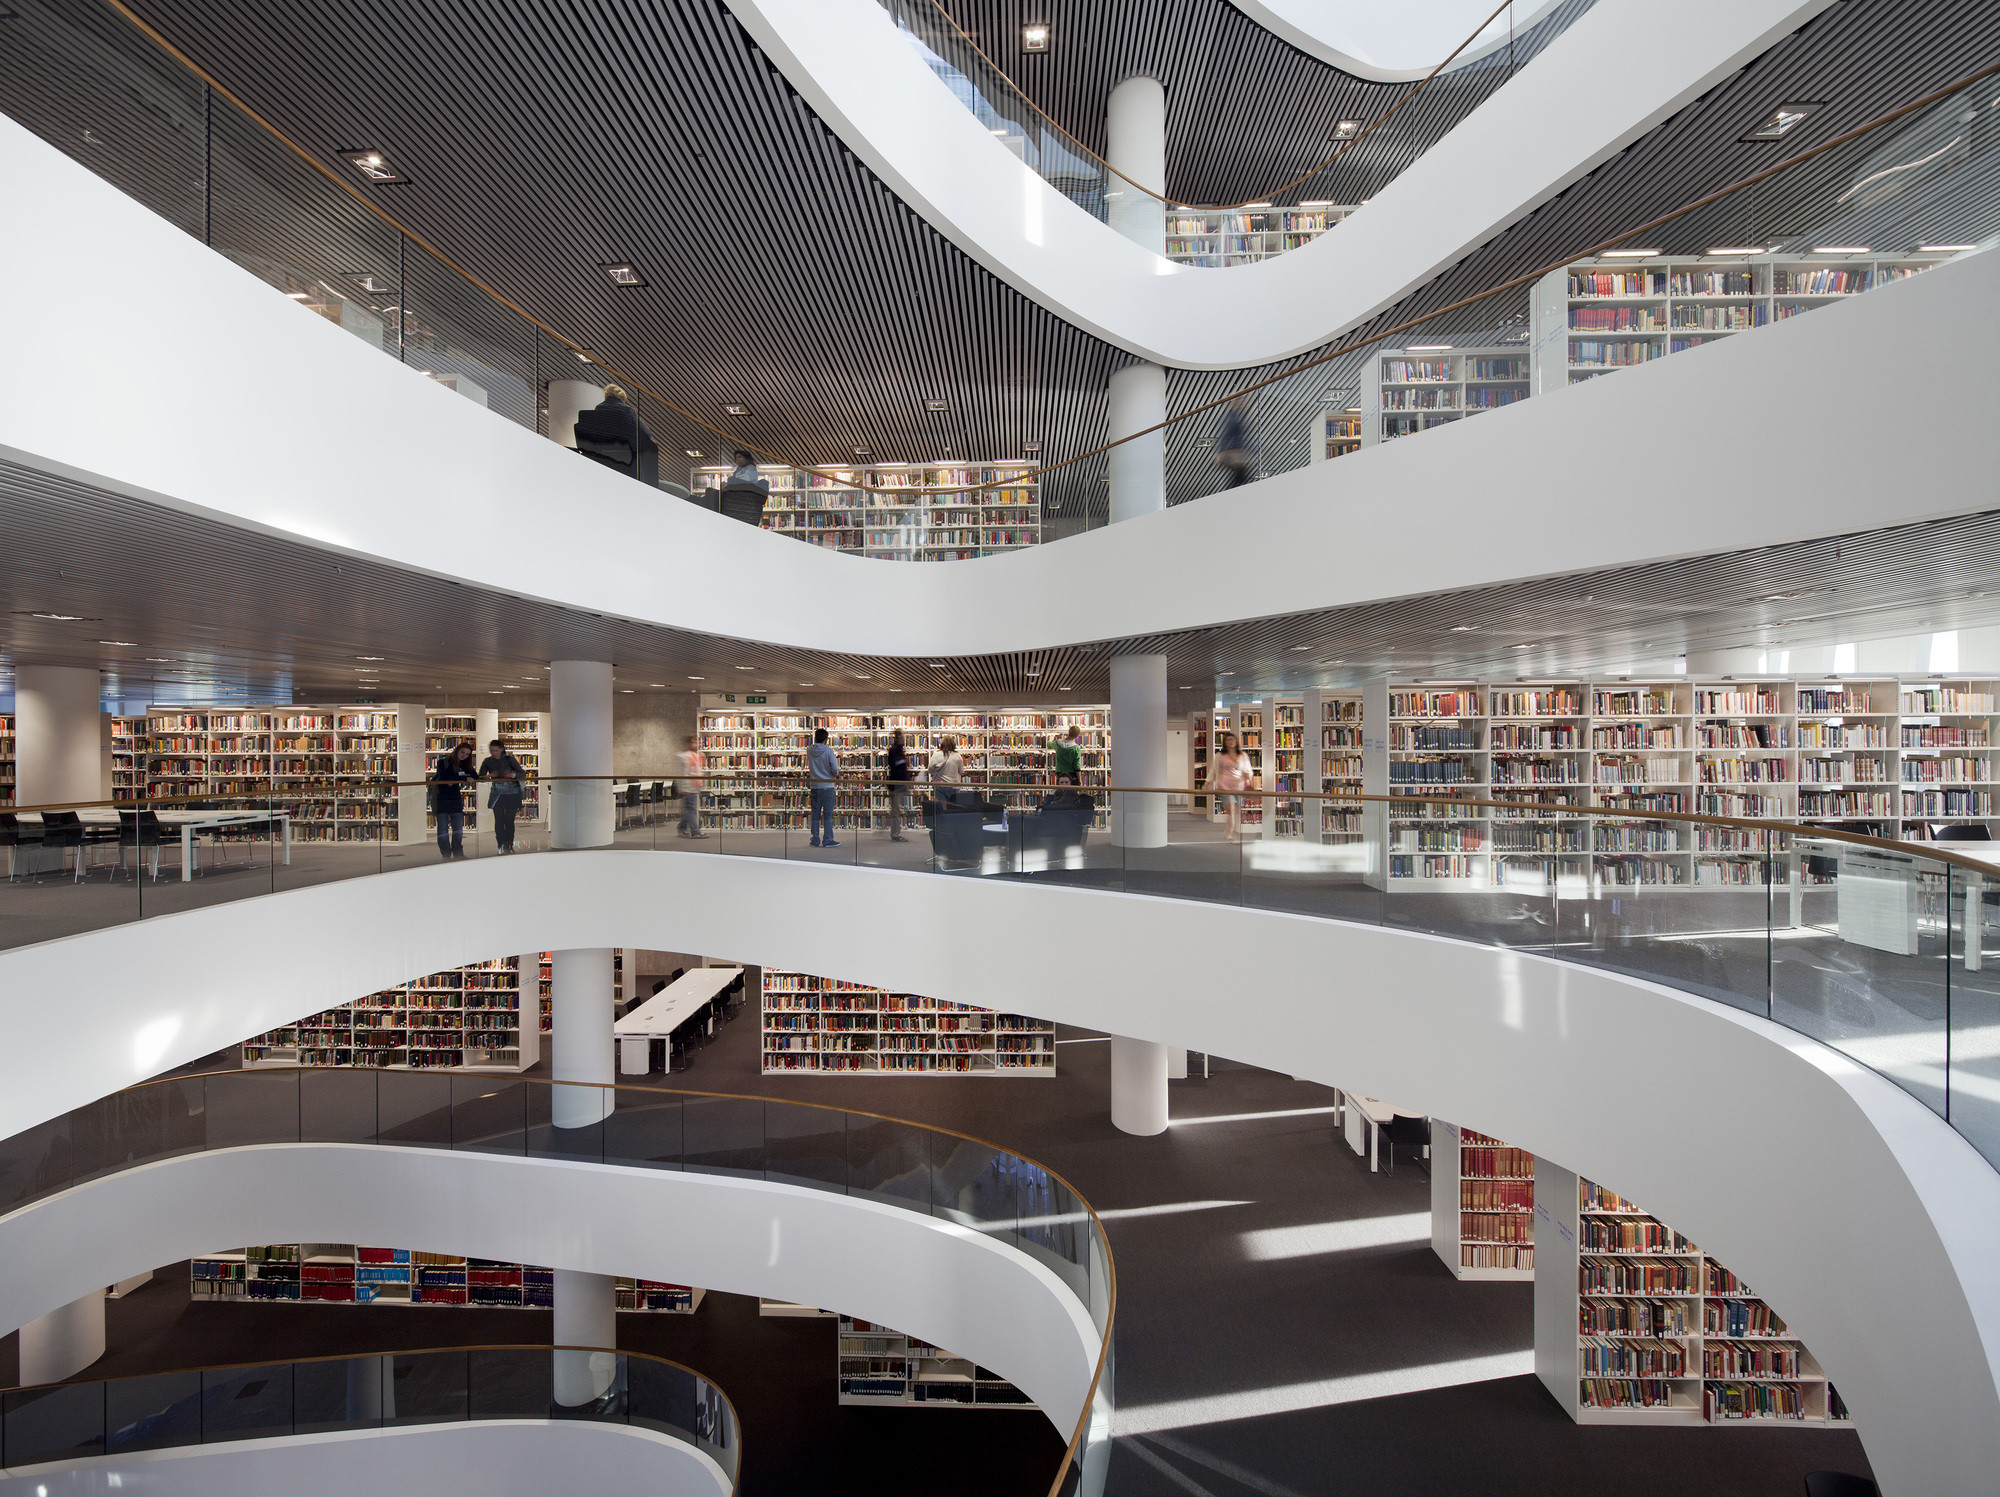 Schmidt Hammer Lassen Architects have been involved in a number of Library designs themselves, including the New Library at the University of Aberdeen. Image © Adam Mørk